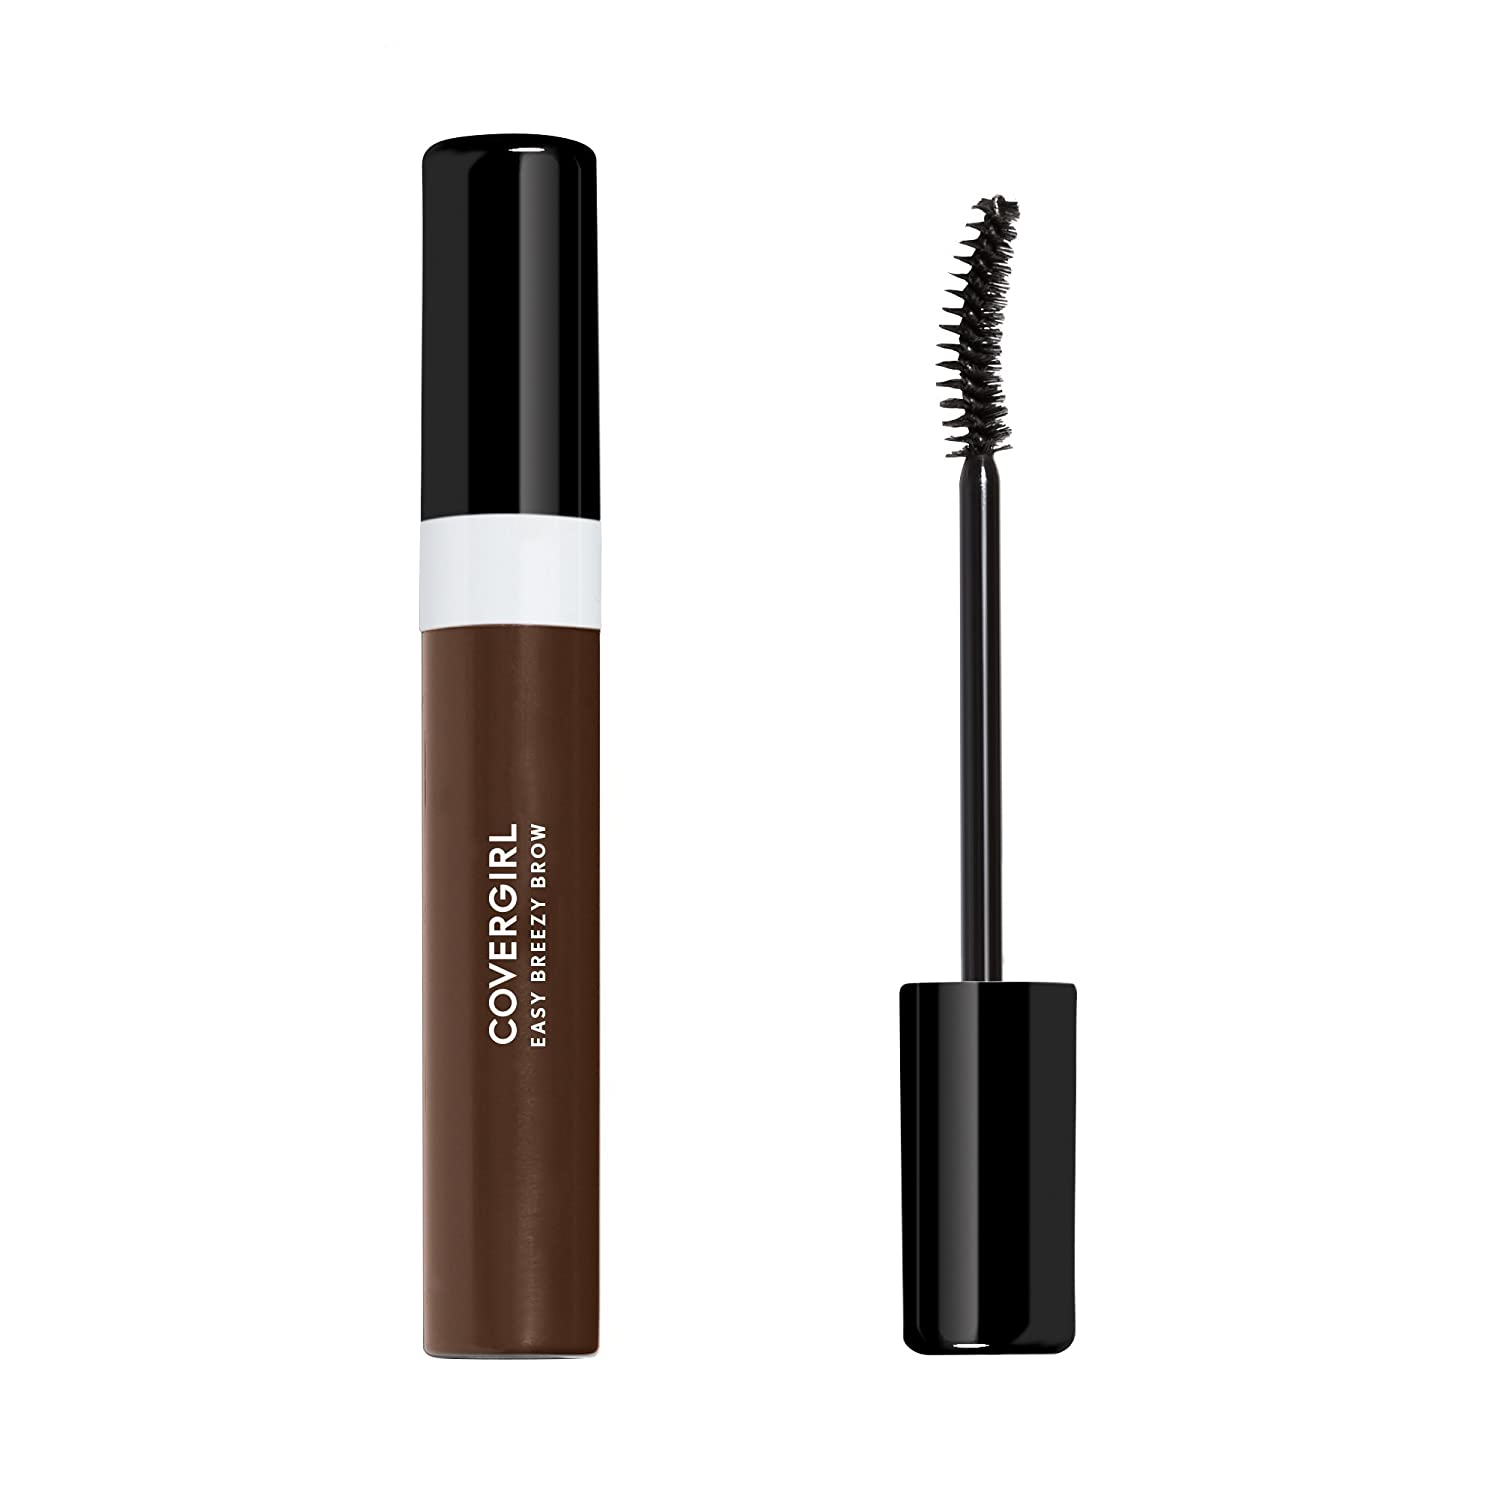 Amazon.com : COVERGIRL Easy Breezy Brow Mascara (packaging may vary) : Beauty